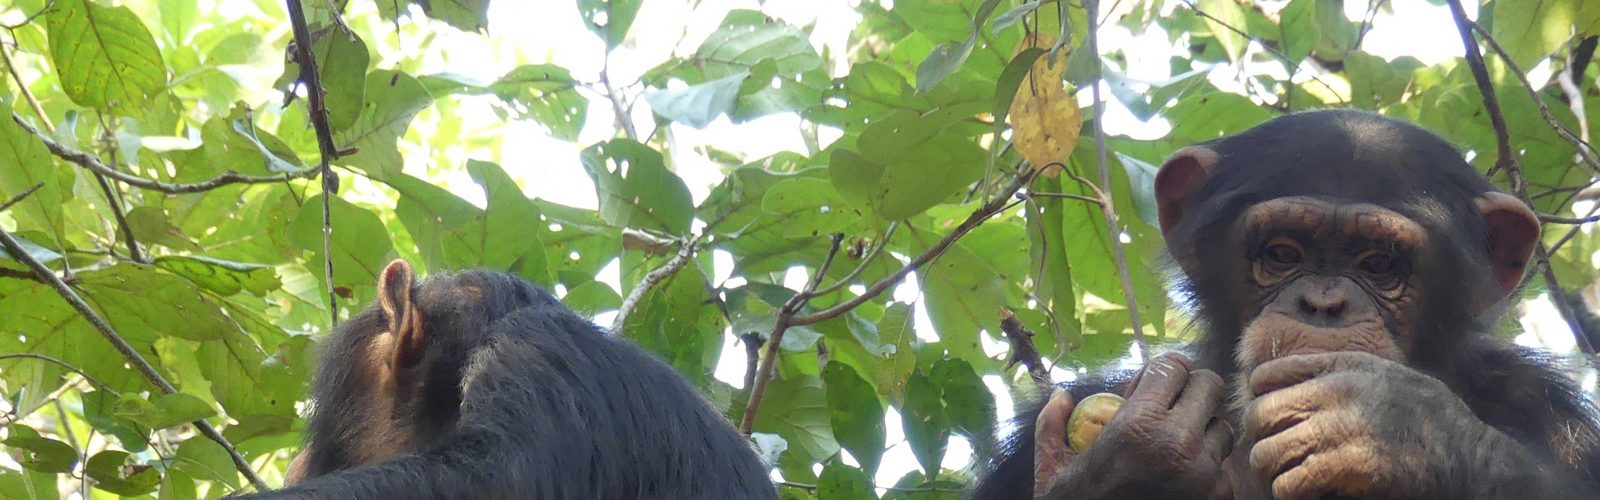 Cropped image of two chimpanzees in a tree eating fruit